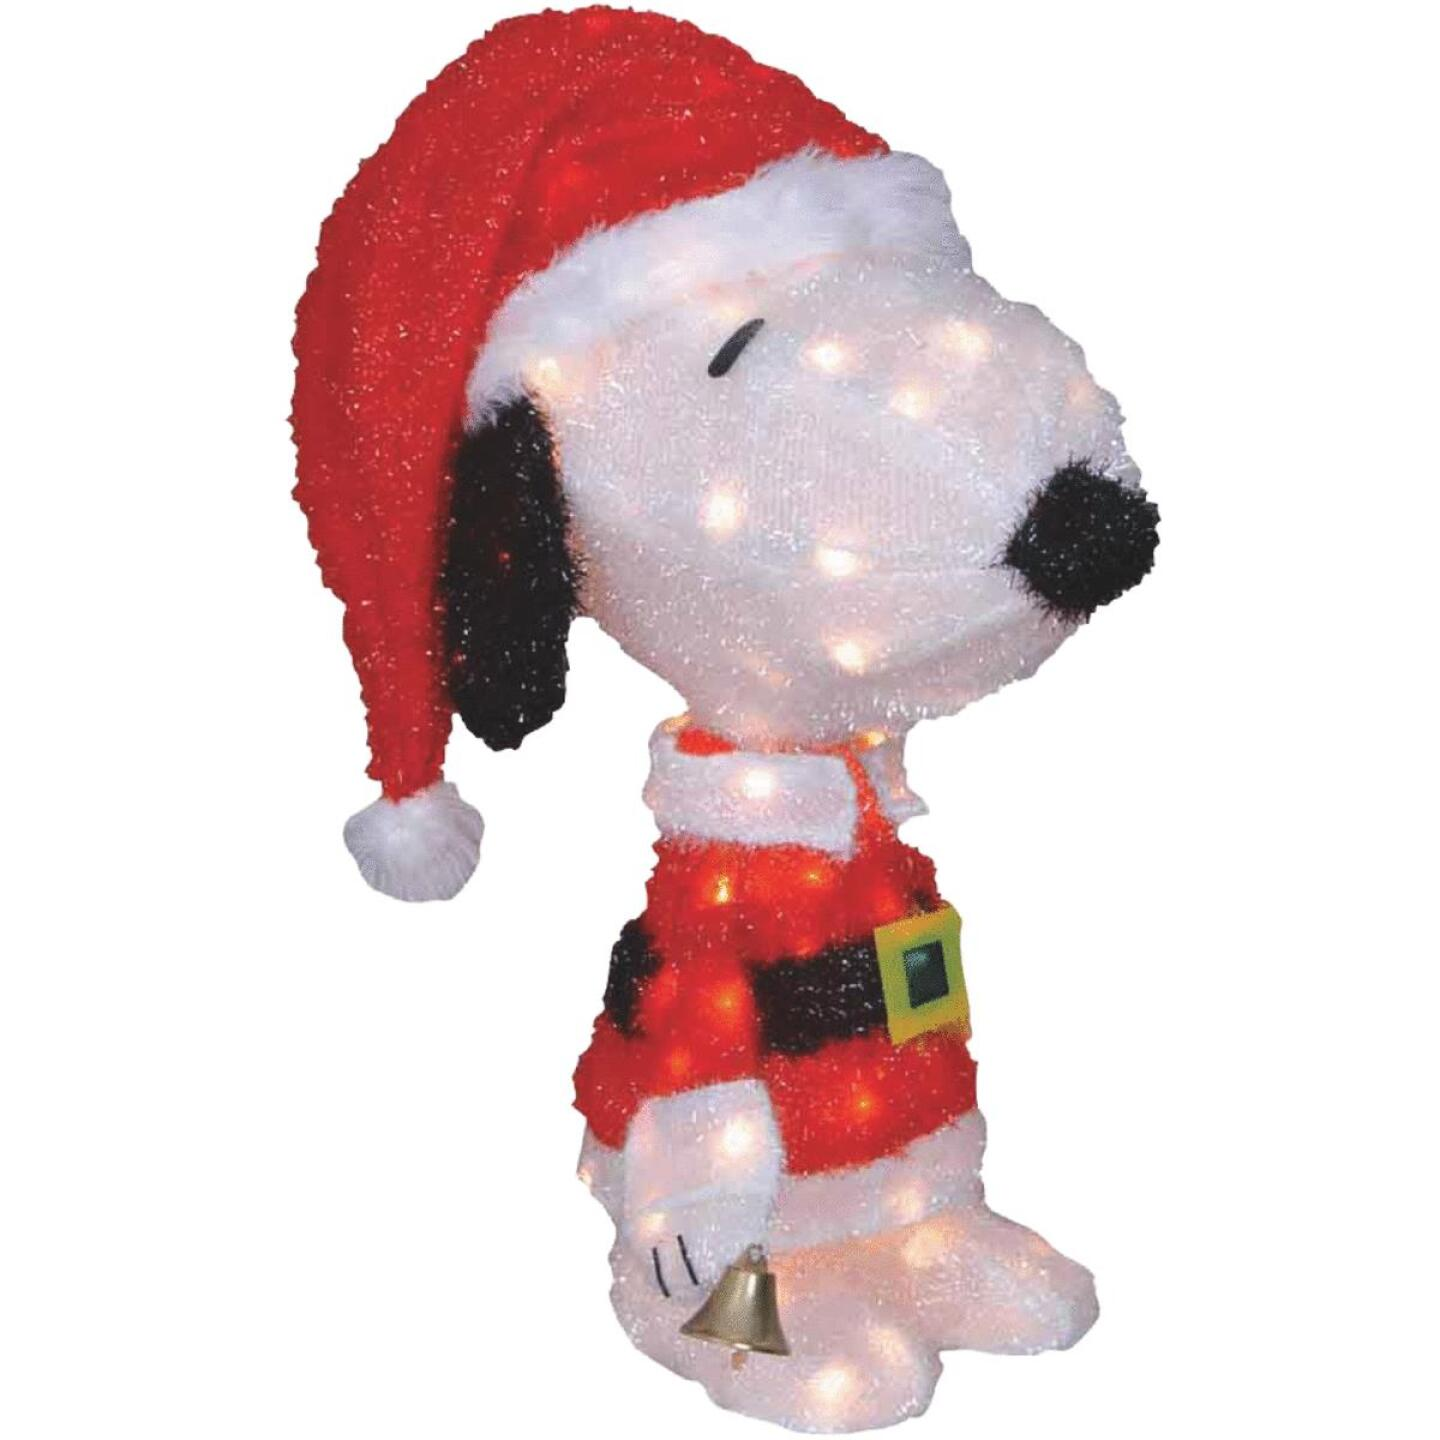 Product Works 26 In. Incandescent Illuminated Santa Snoopy Holiday Figure Image 1